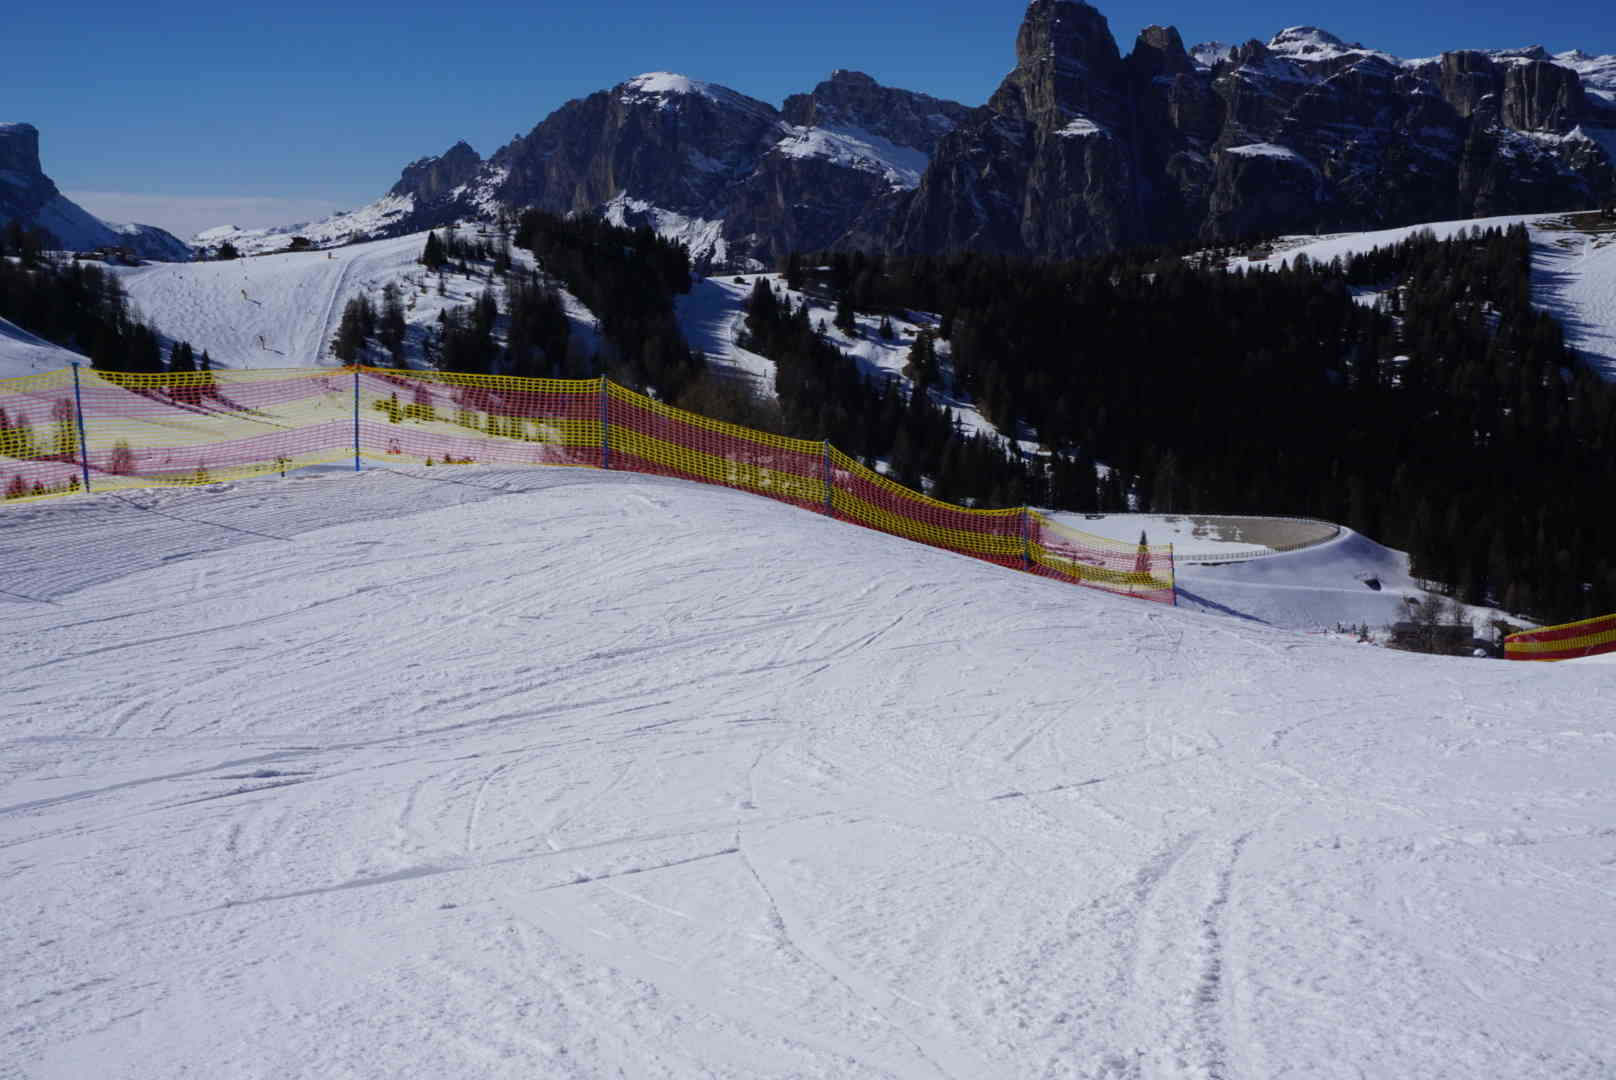 Beginner Area Schnee-Elemente Banked Turn